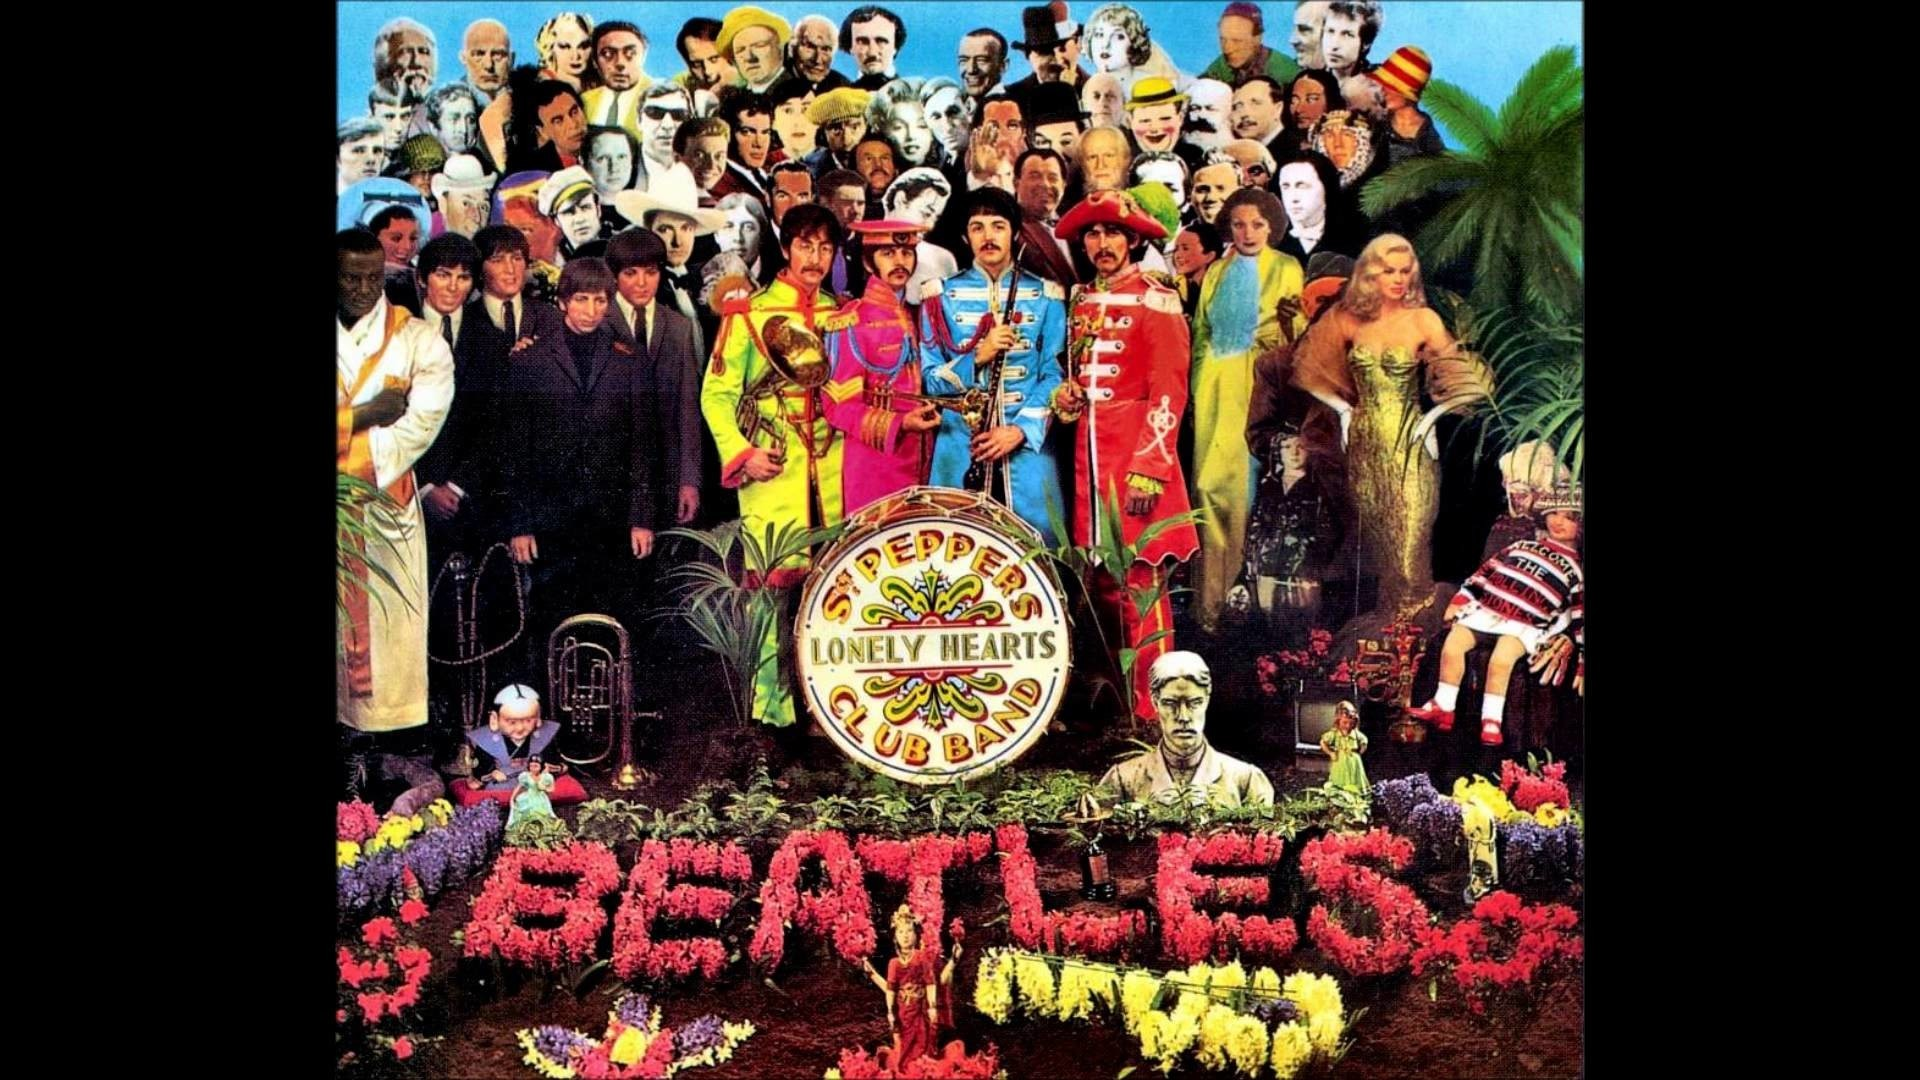 Sgt Pepper Wallpaper 183 ① Wallpapertag